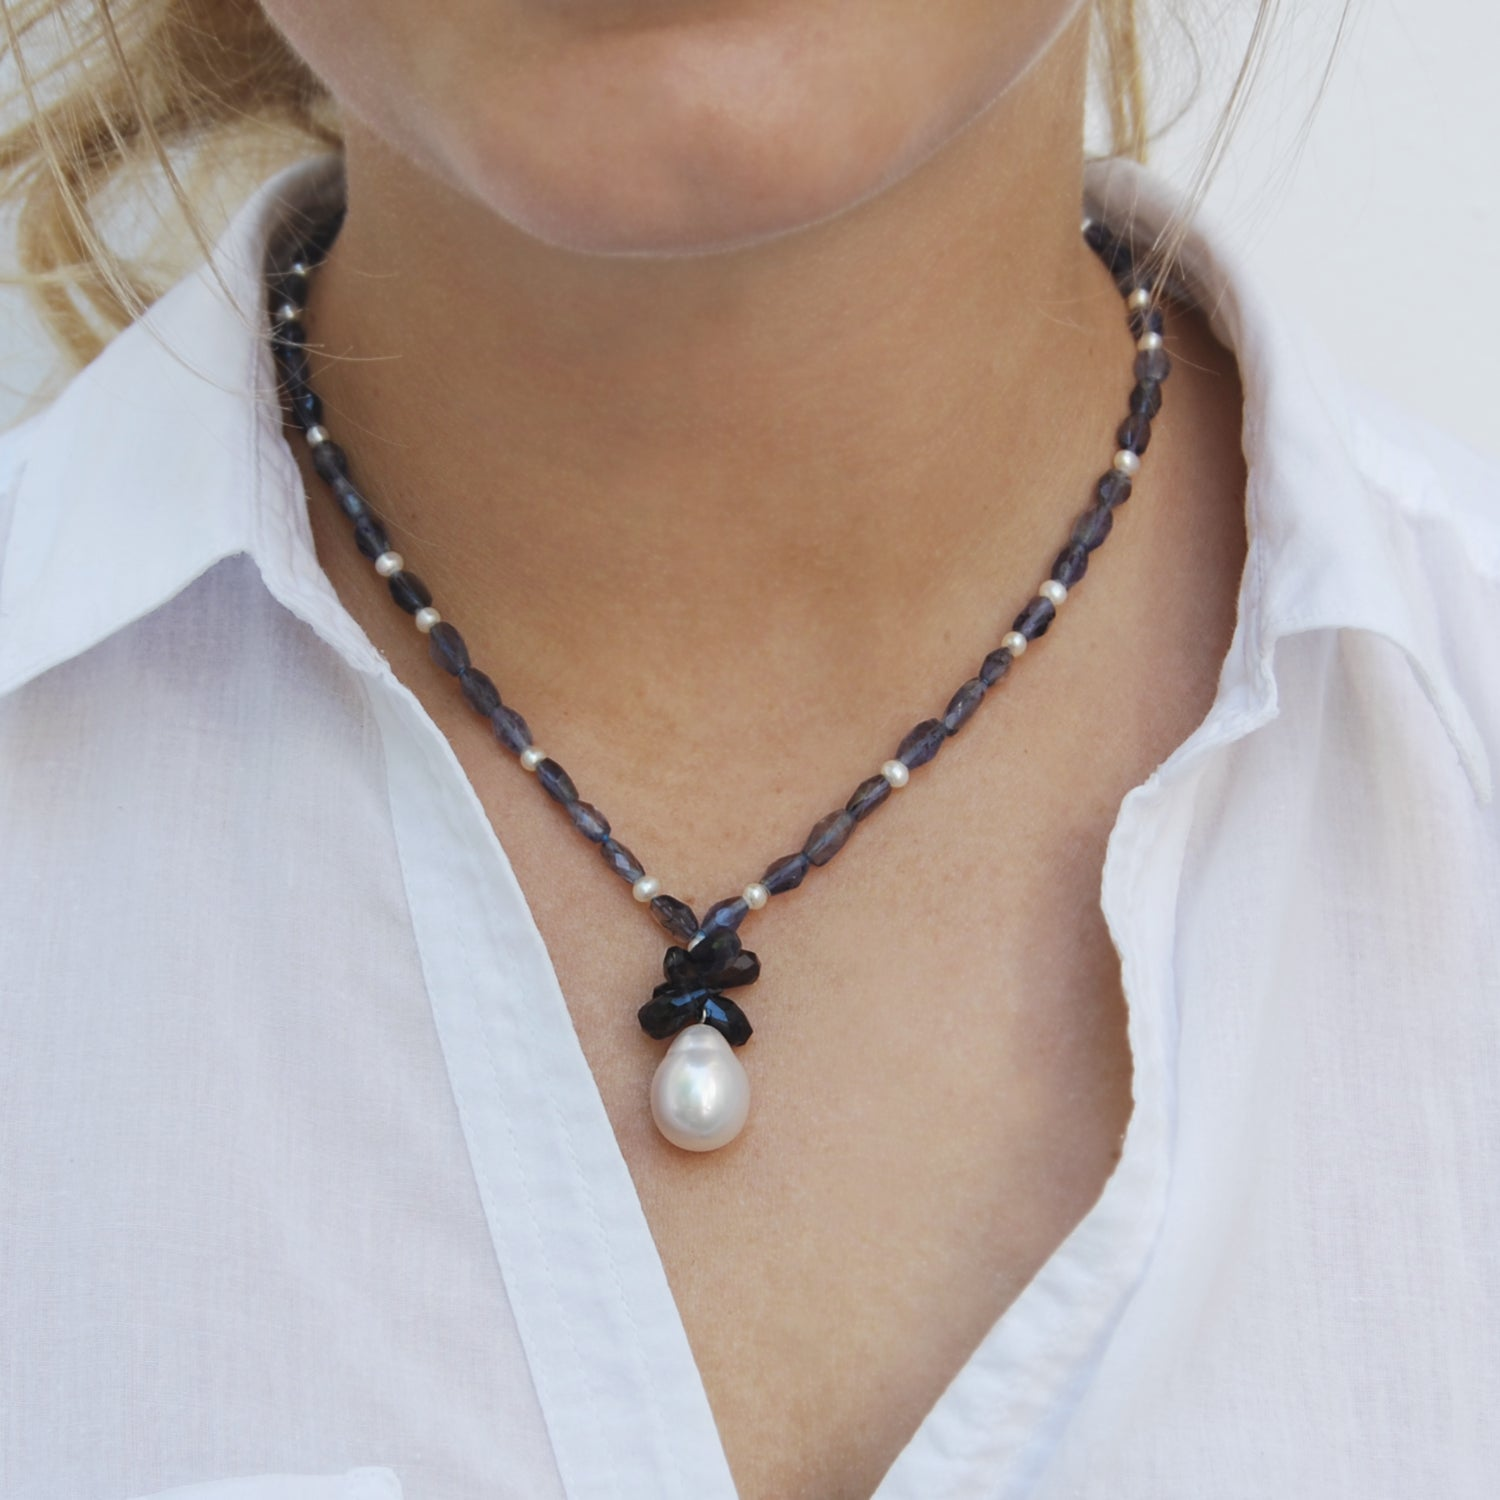 South Sea Pearl and Iolite Pendant Necklace